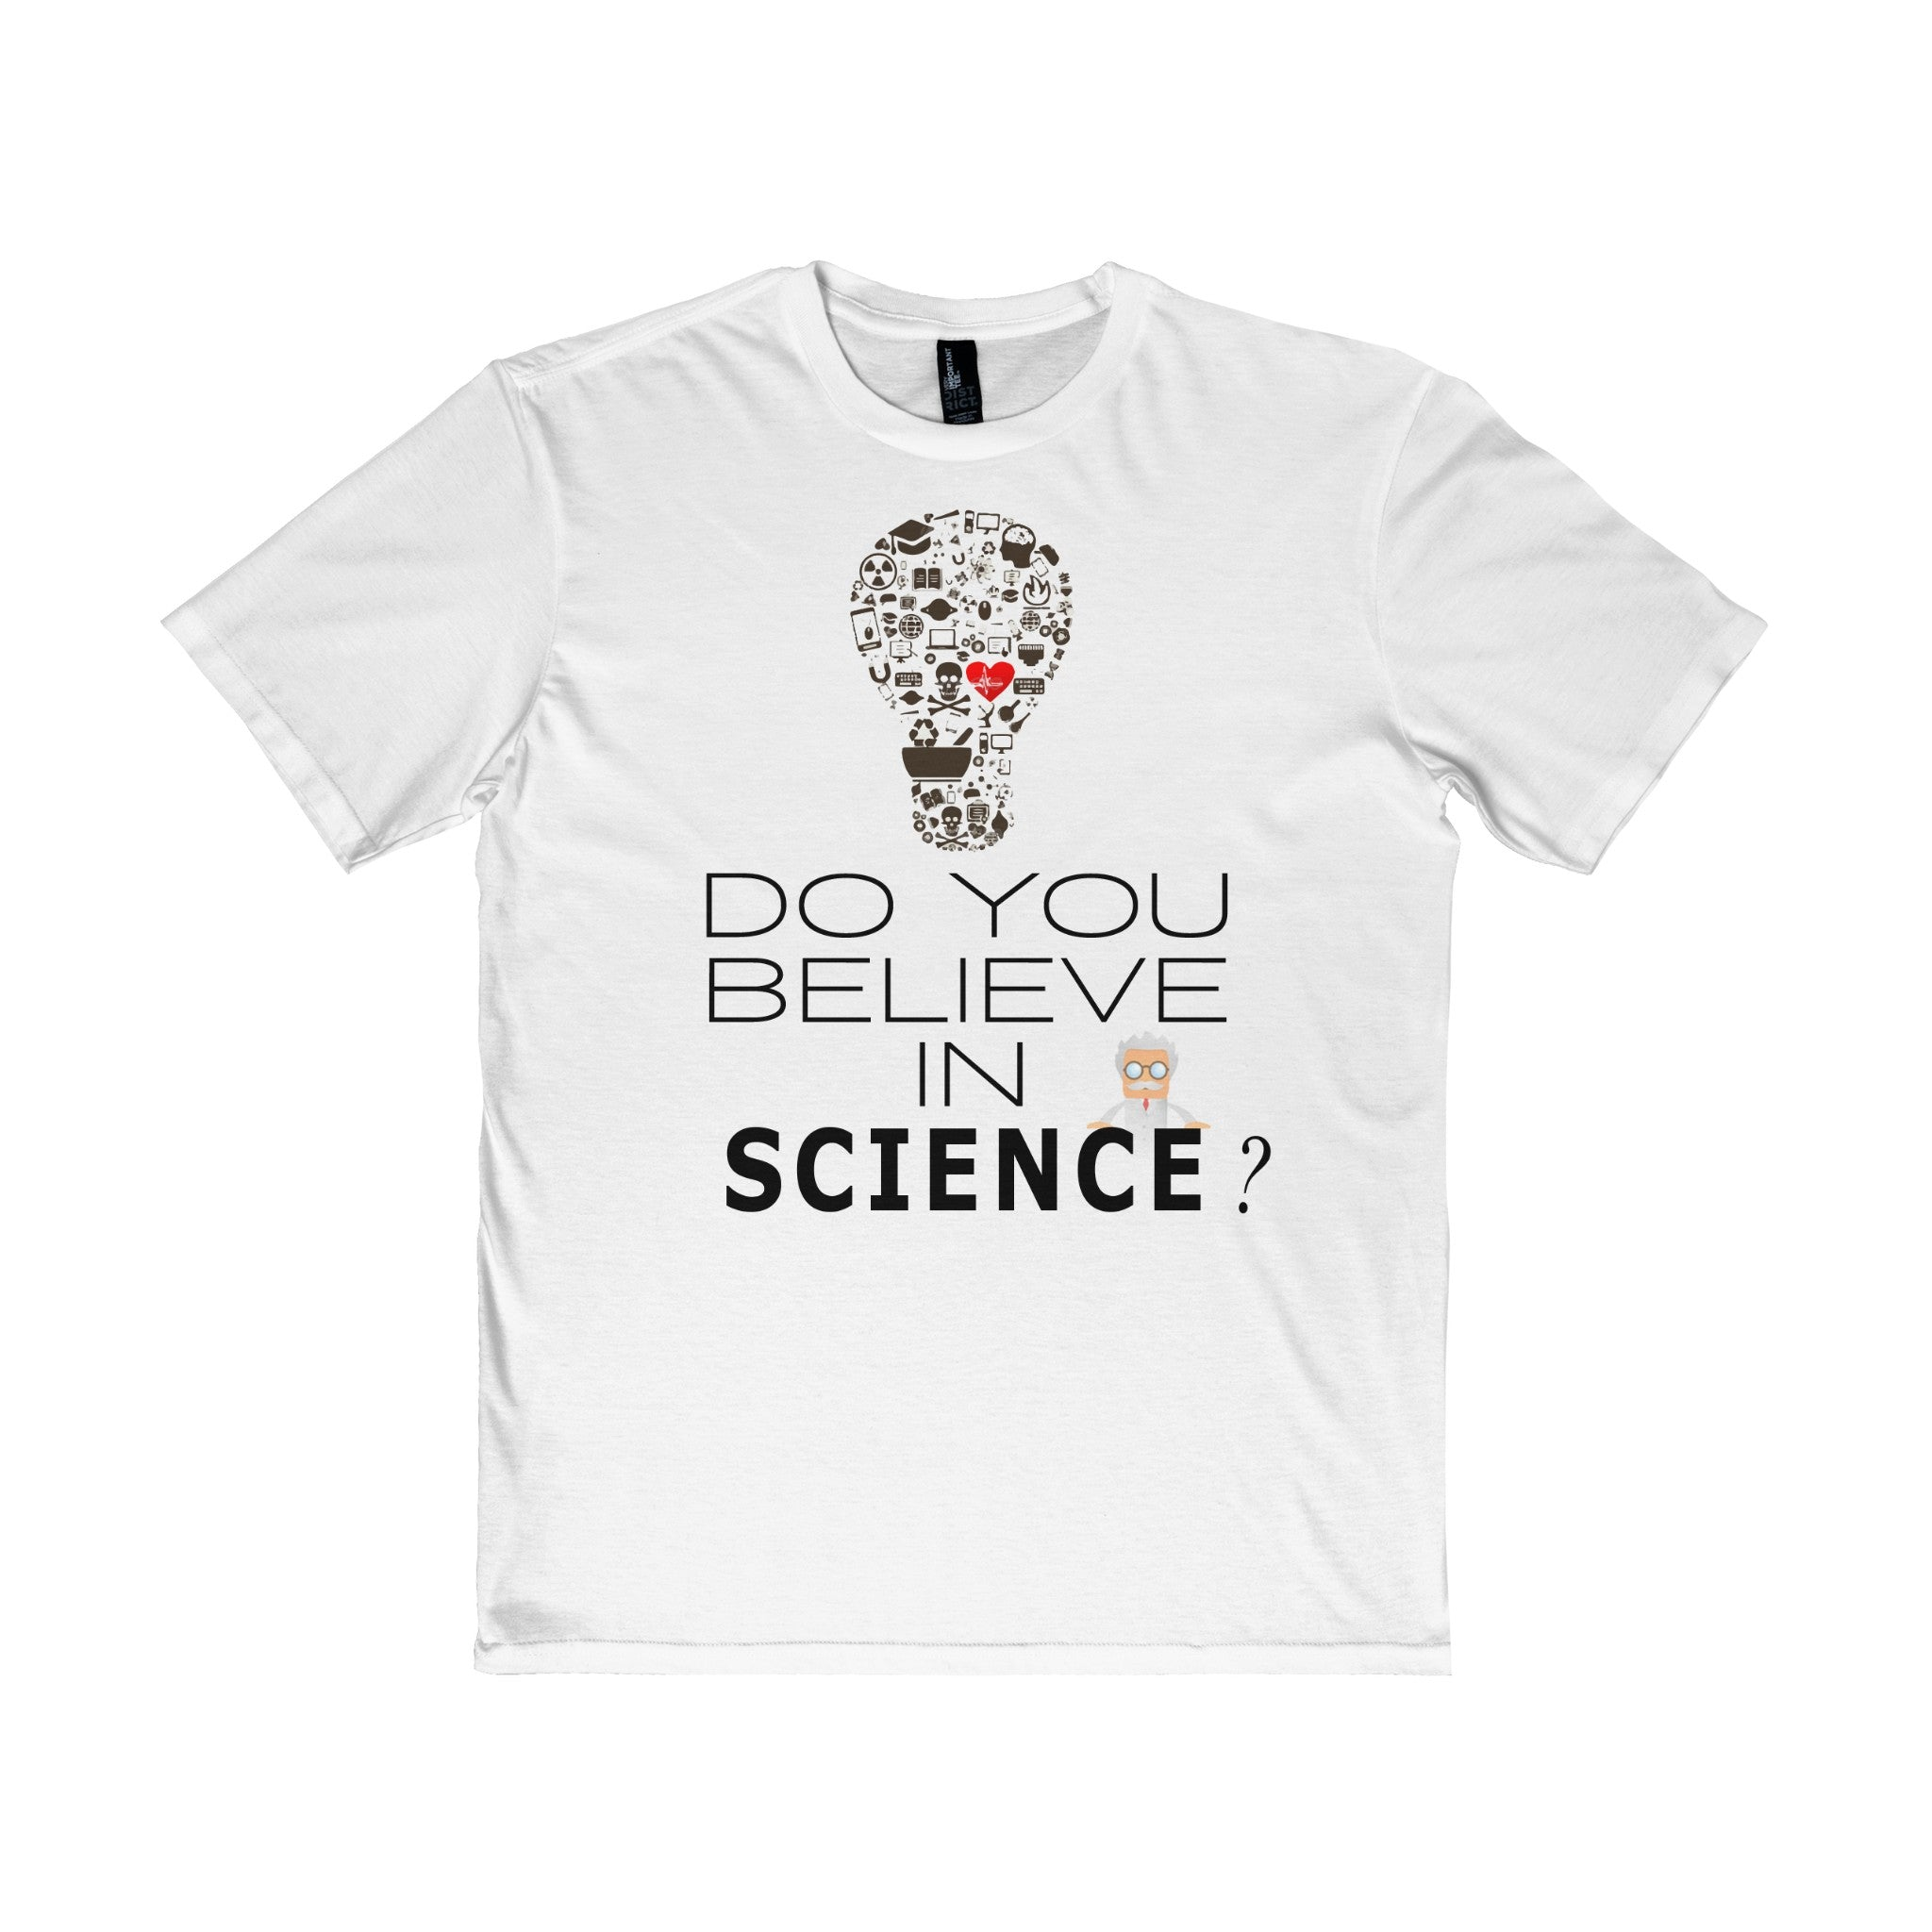 Do You Believe In Science? Perfect for Geeks And The Intrepid